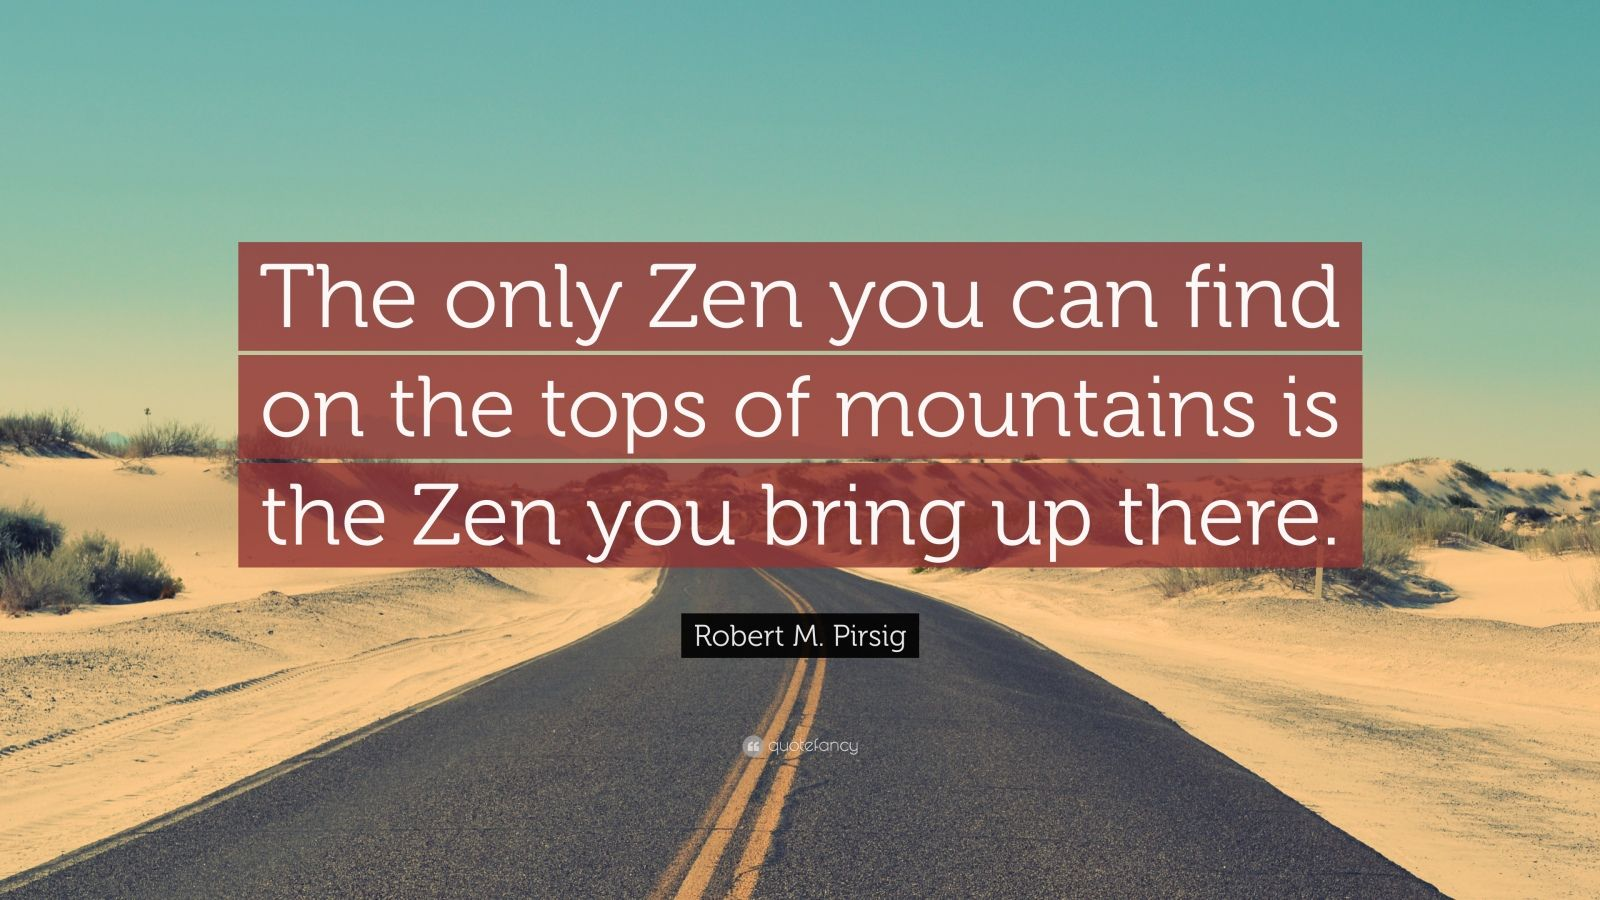 """Robert M. Pirsig Quote: """"The only Zen you can find on the tops of mountains is the Zen you bring up there."""""""